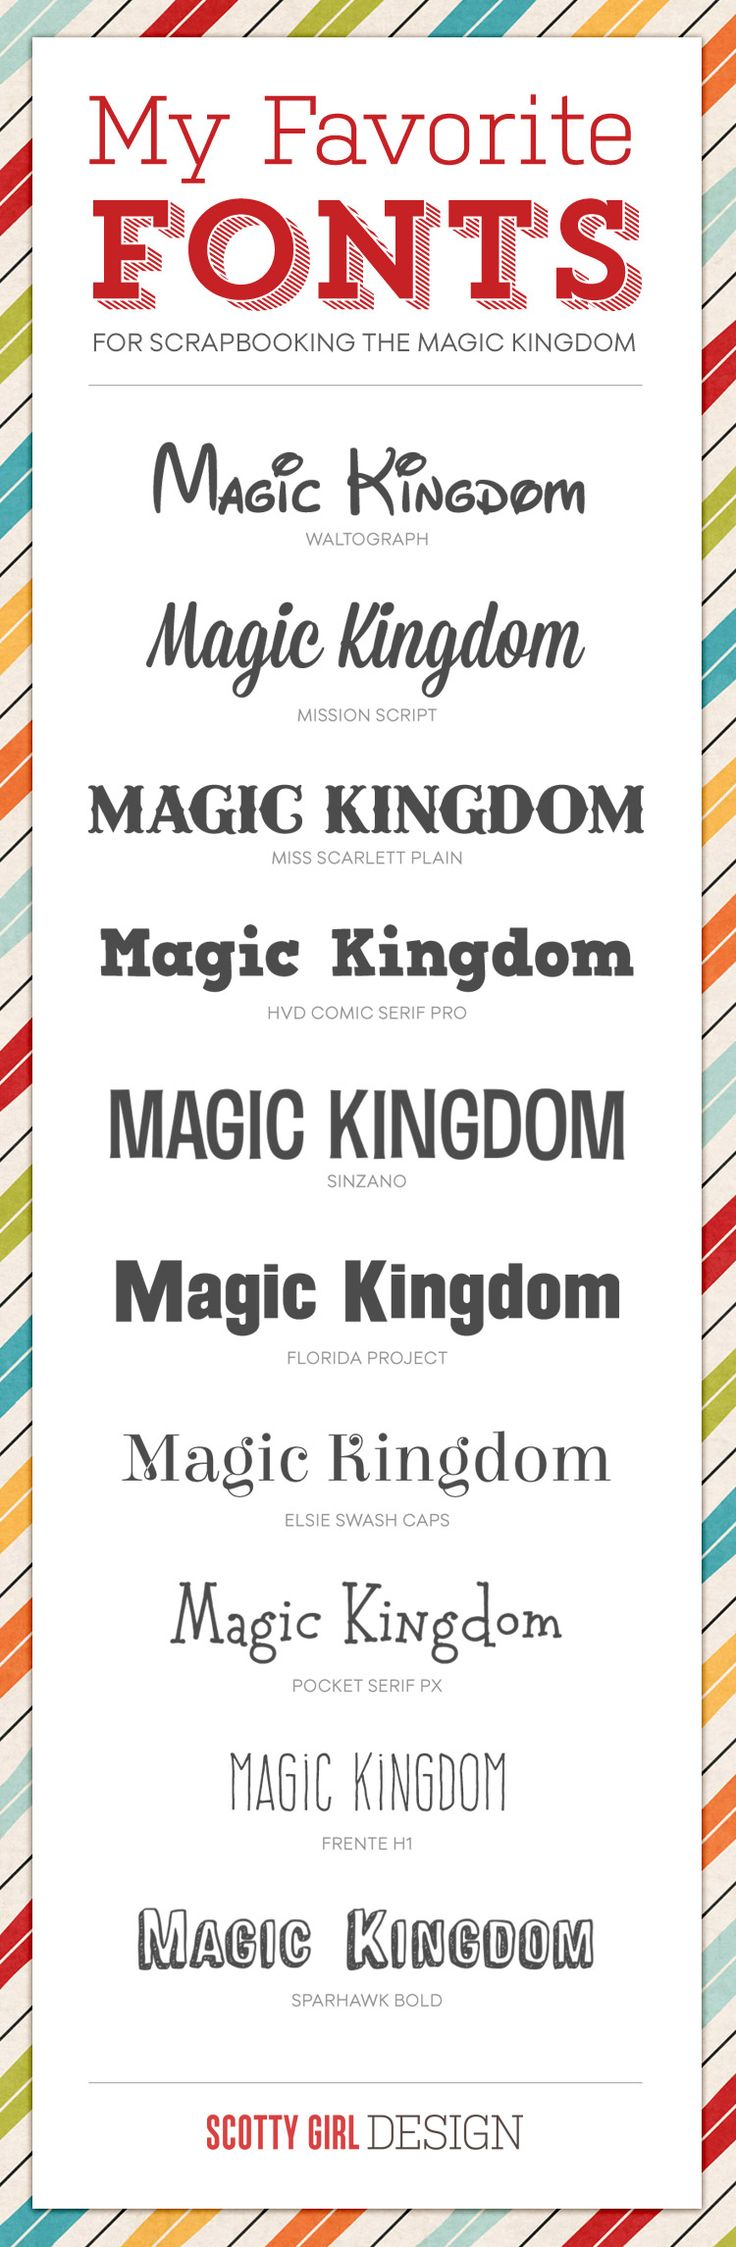 My favorite fonts for scrapbooking the Magic Kingdom at scottygirldesign.com